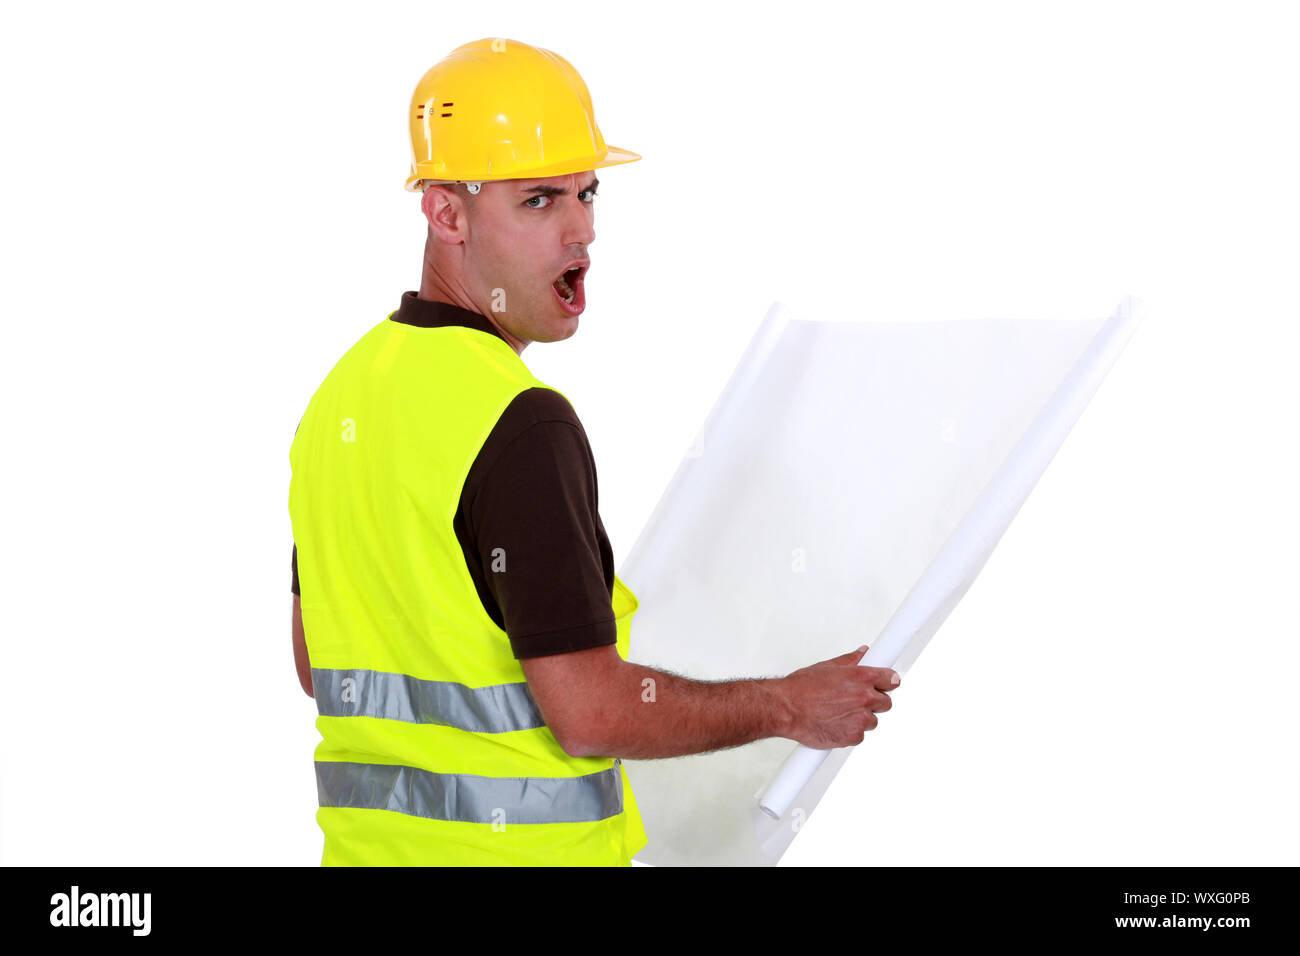 Worker open mouthed in disbelief Stock Photo